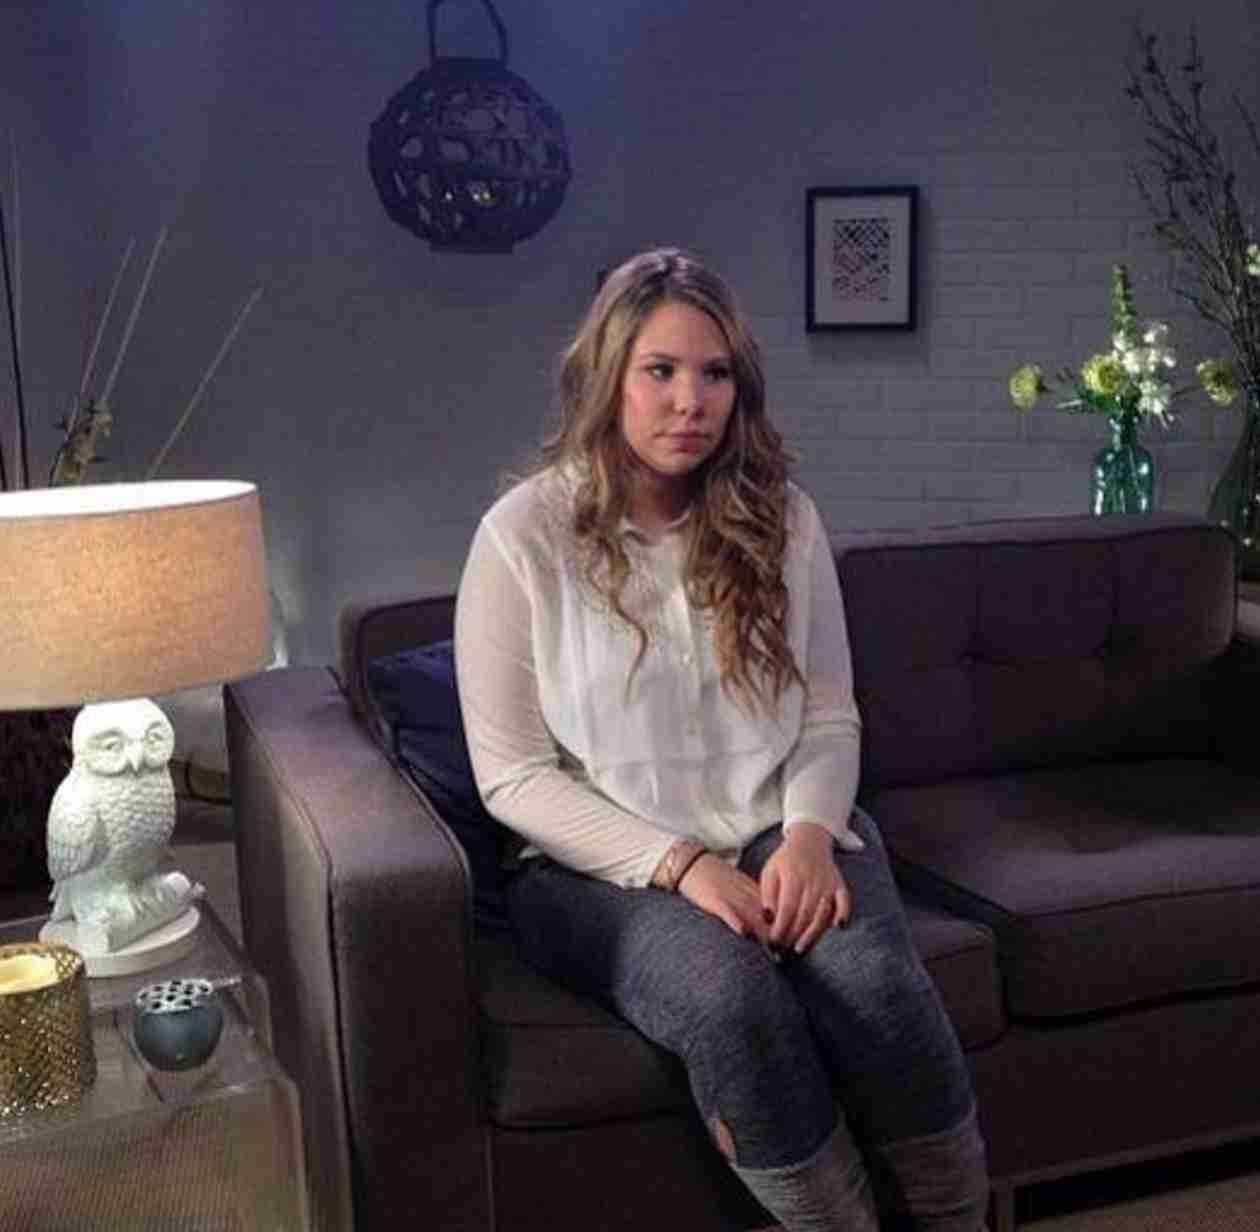 Kailyn Lowry Opens Up About Losing Her Virginity and Not Regretting Her Abortion